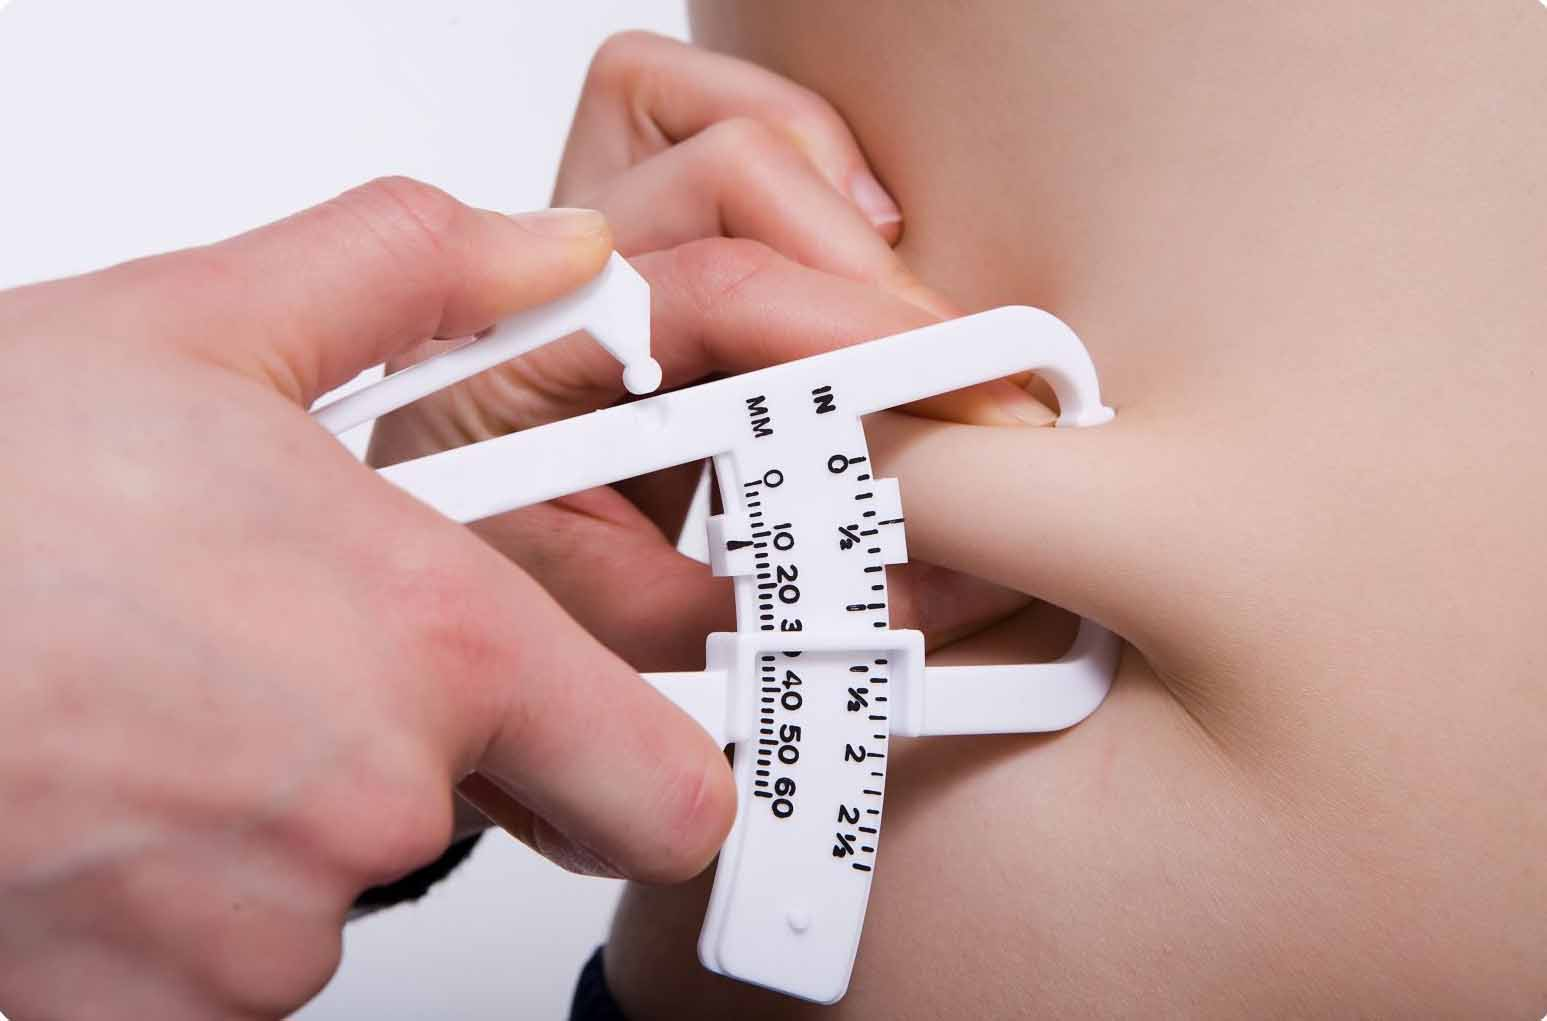 What Is Bmi And How To Calculate Yours? Top Web Search